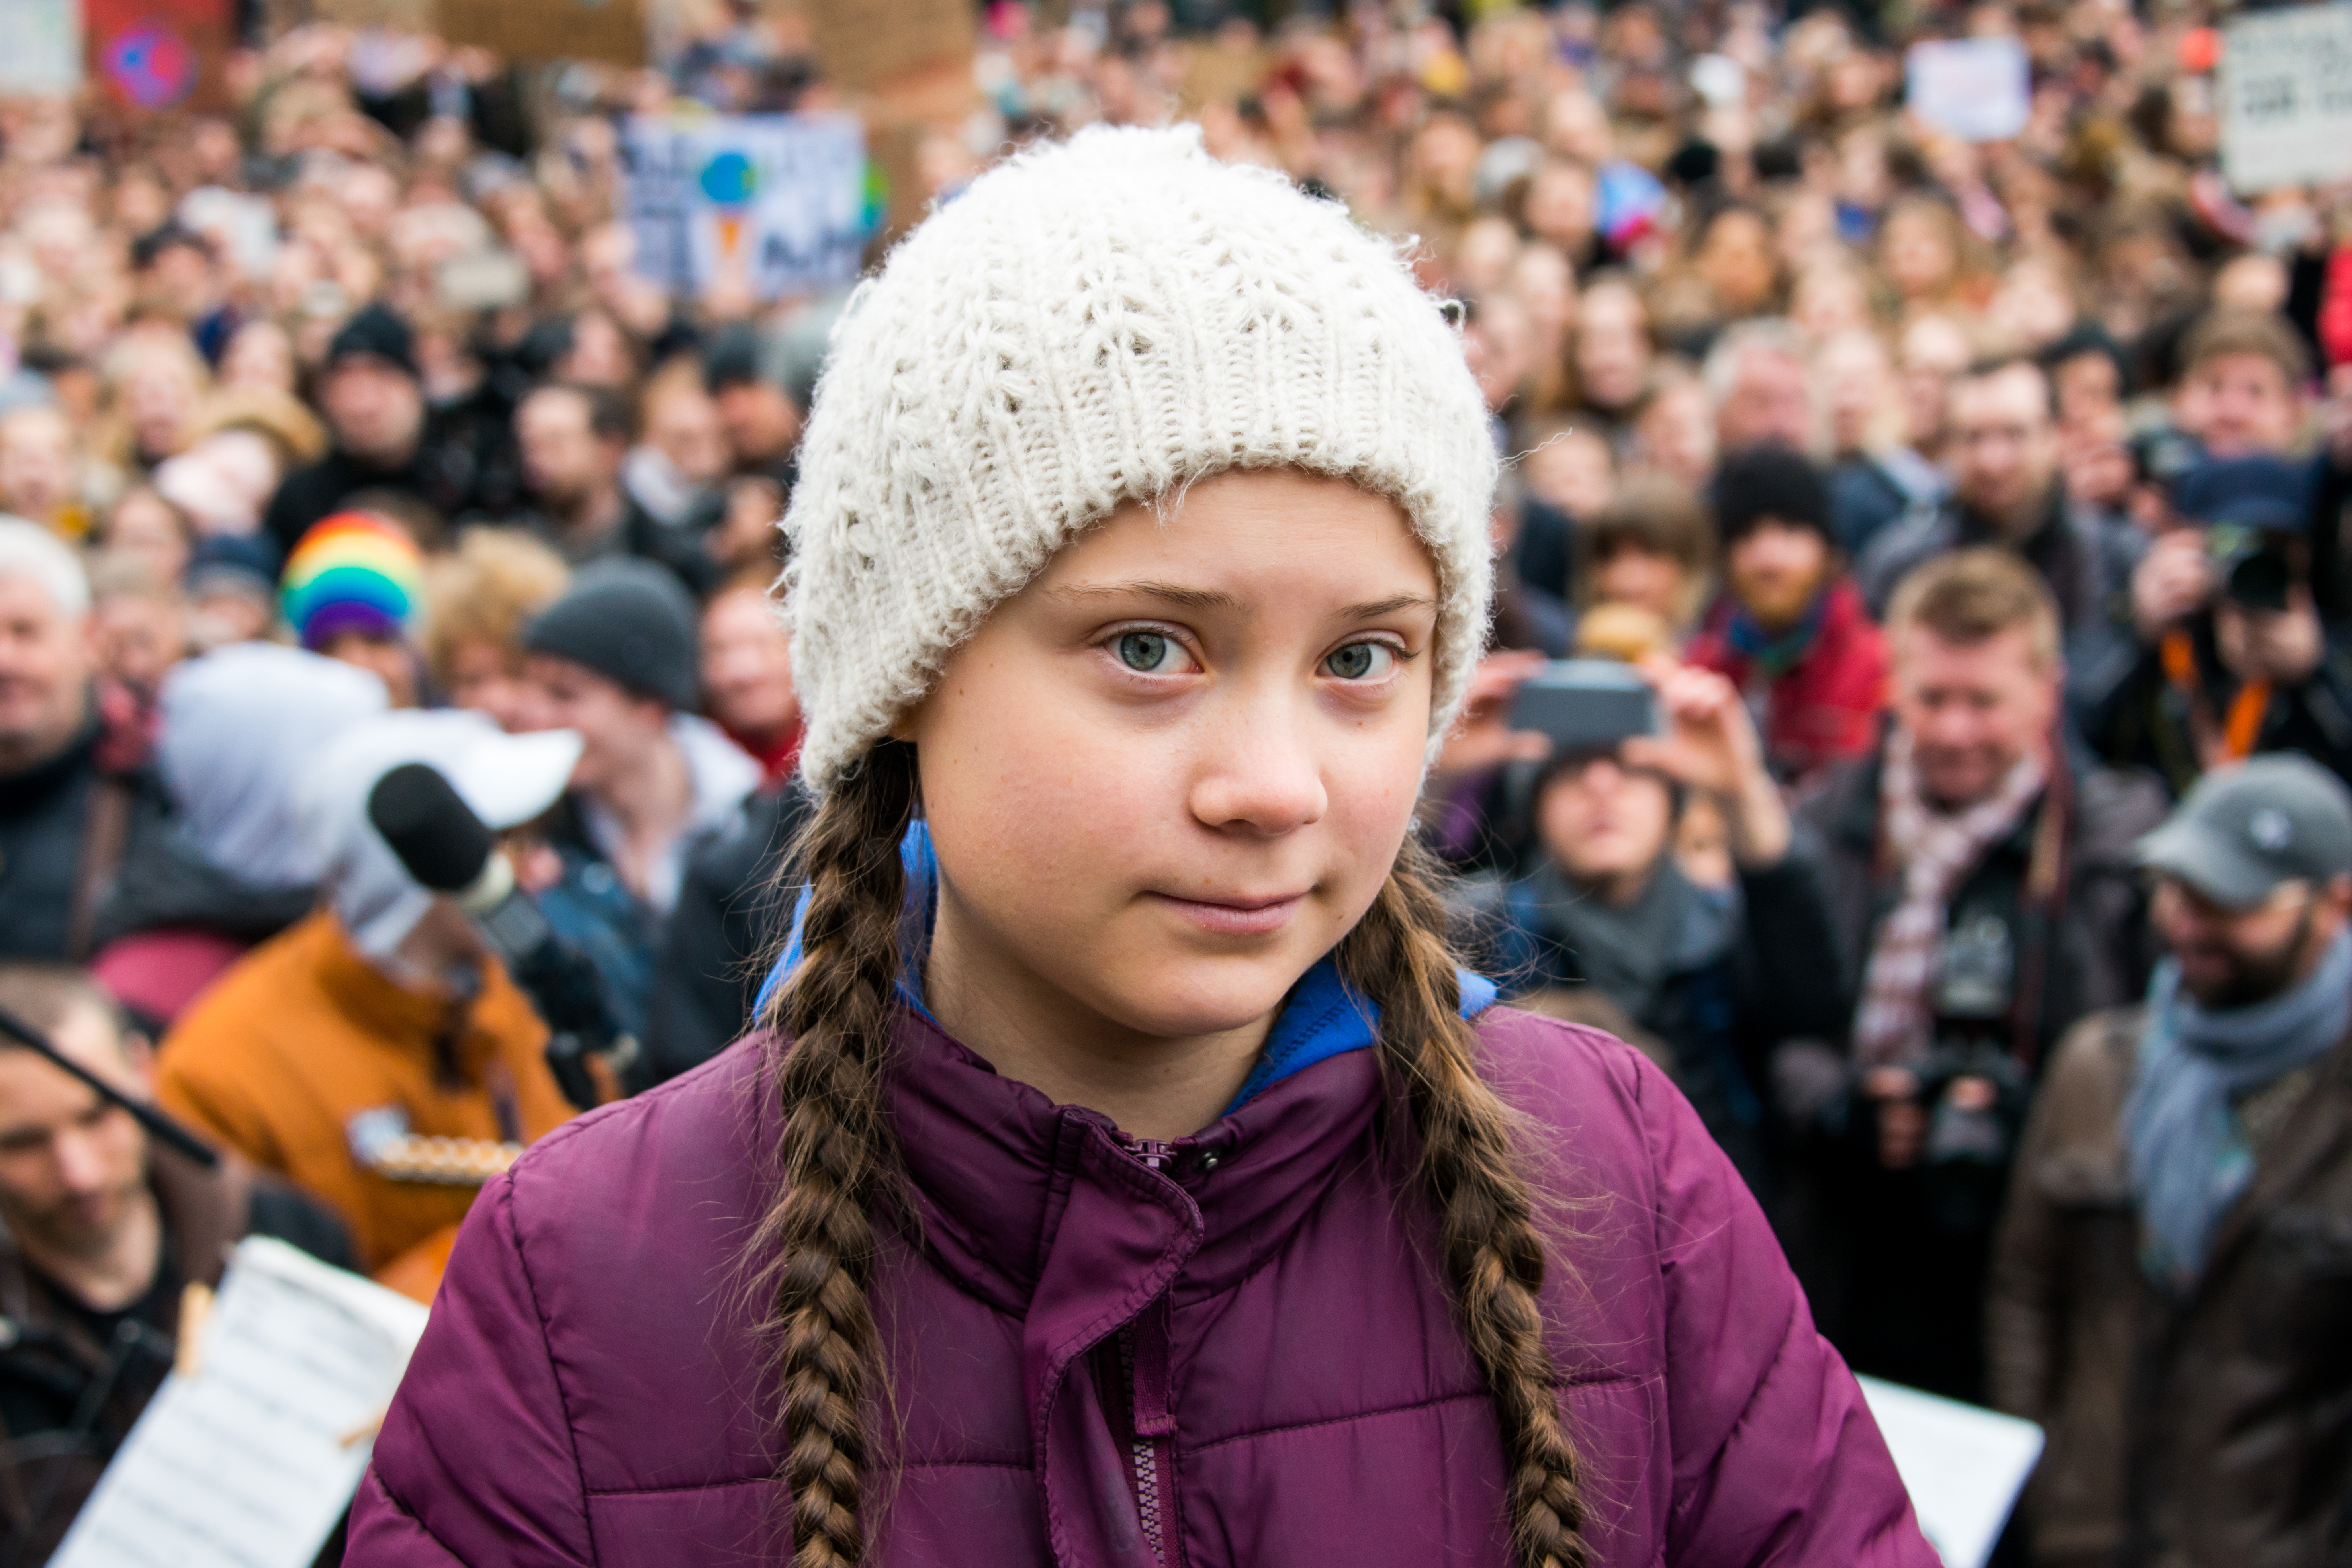 Greta Thunberg, climate activist, stands on a stage during a rally at the town hall market in Hamburg, Germany, on Mar. 1, 2019.